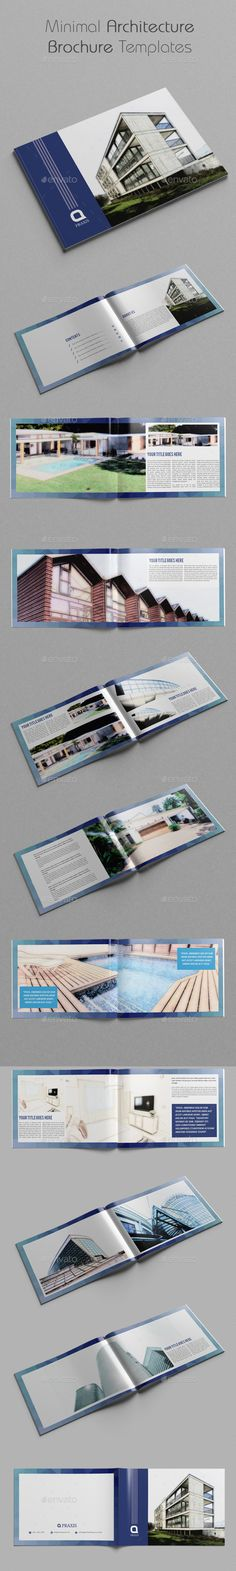 Architecture Brochure Template Ver.Ii | Architecture, Brochure